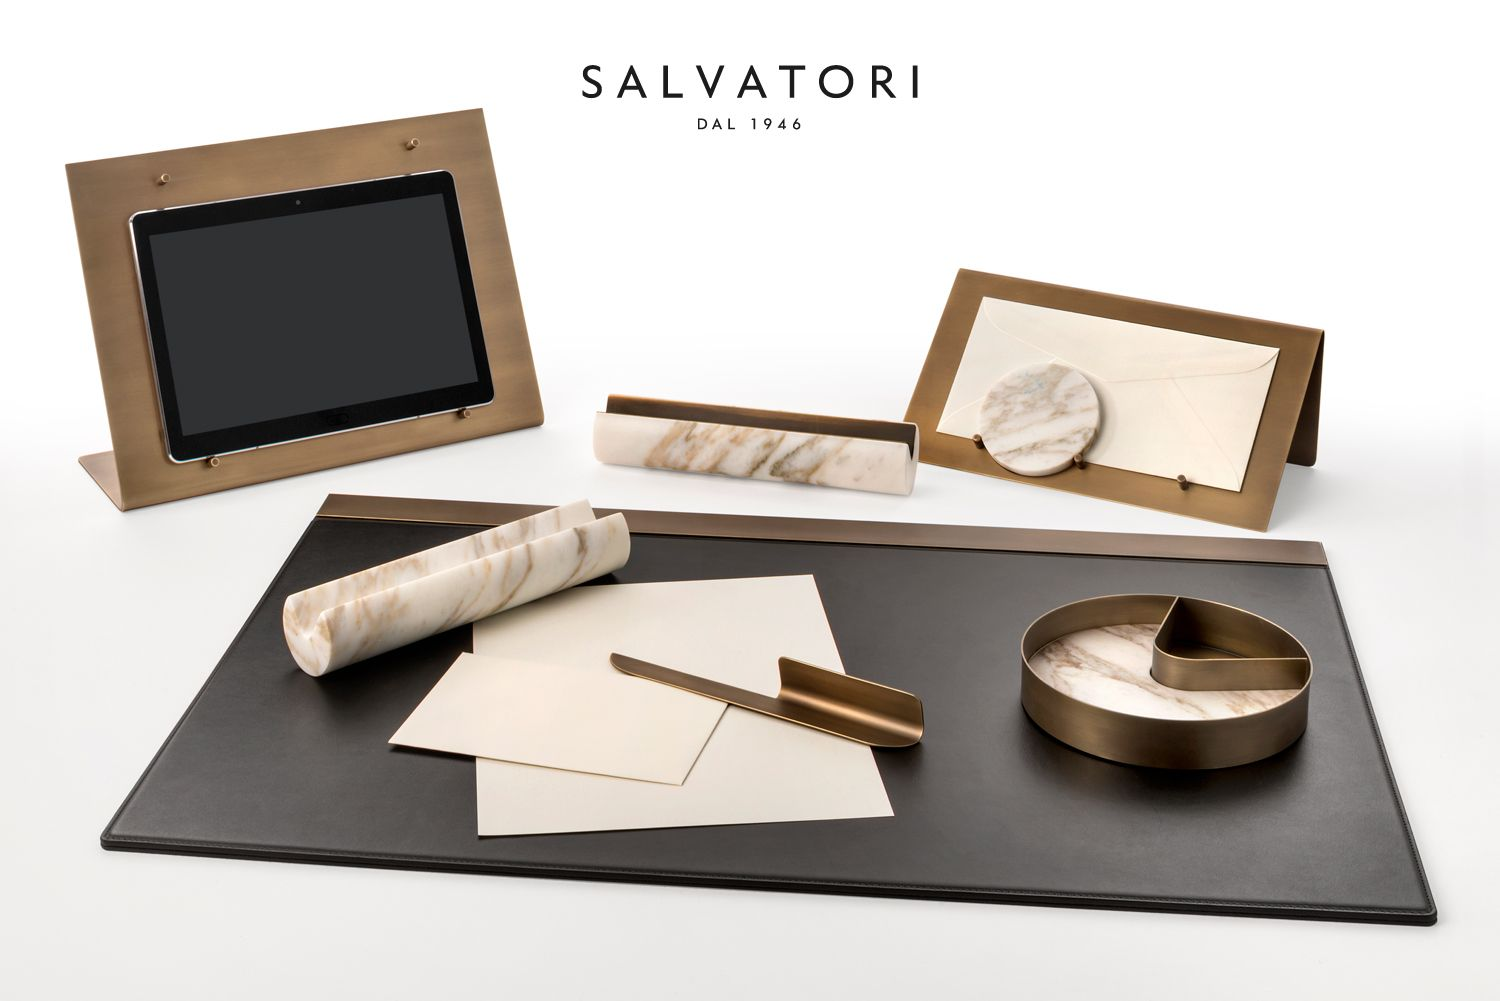 Attractive U0027BALANCINGu0027: LUXURY OFFICE ACCESSORIES The Balancing Collection Of Desk  Accessories By Studiocharlie For Salvatori Brings Together Marble And Brass  In An ...